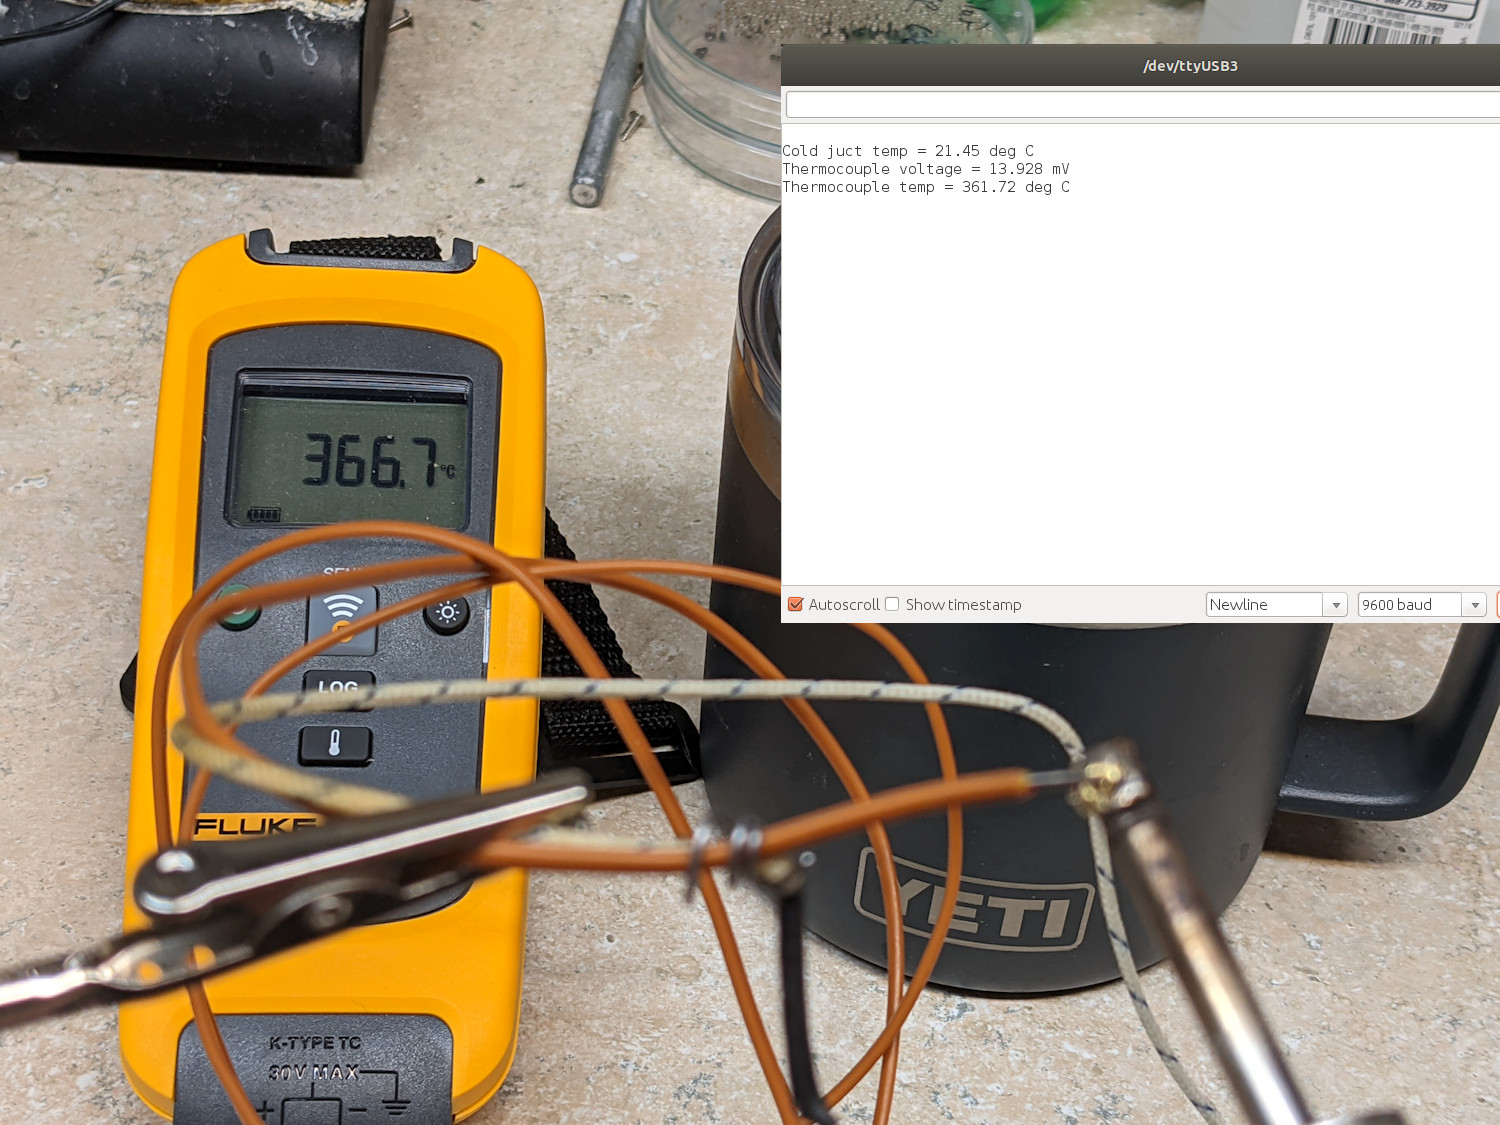 Measuring the soldering iron